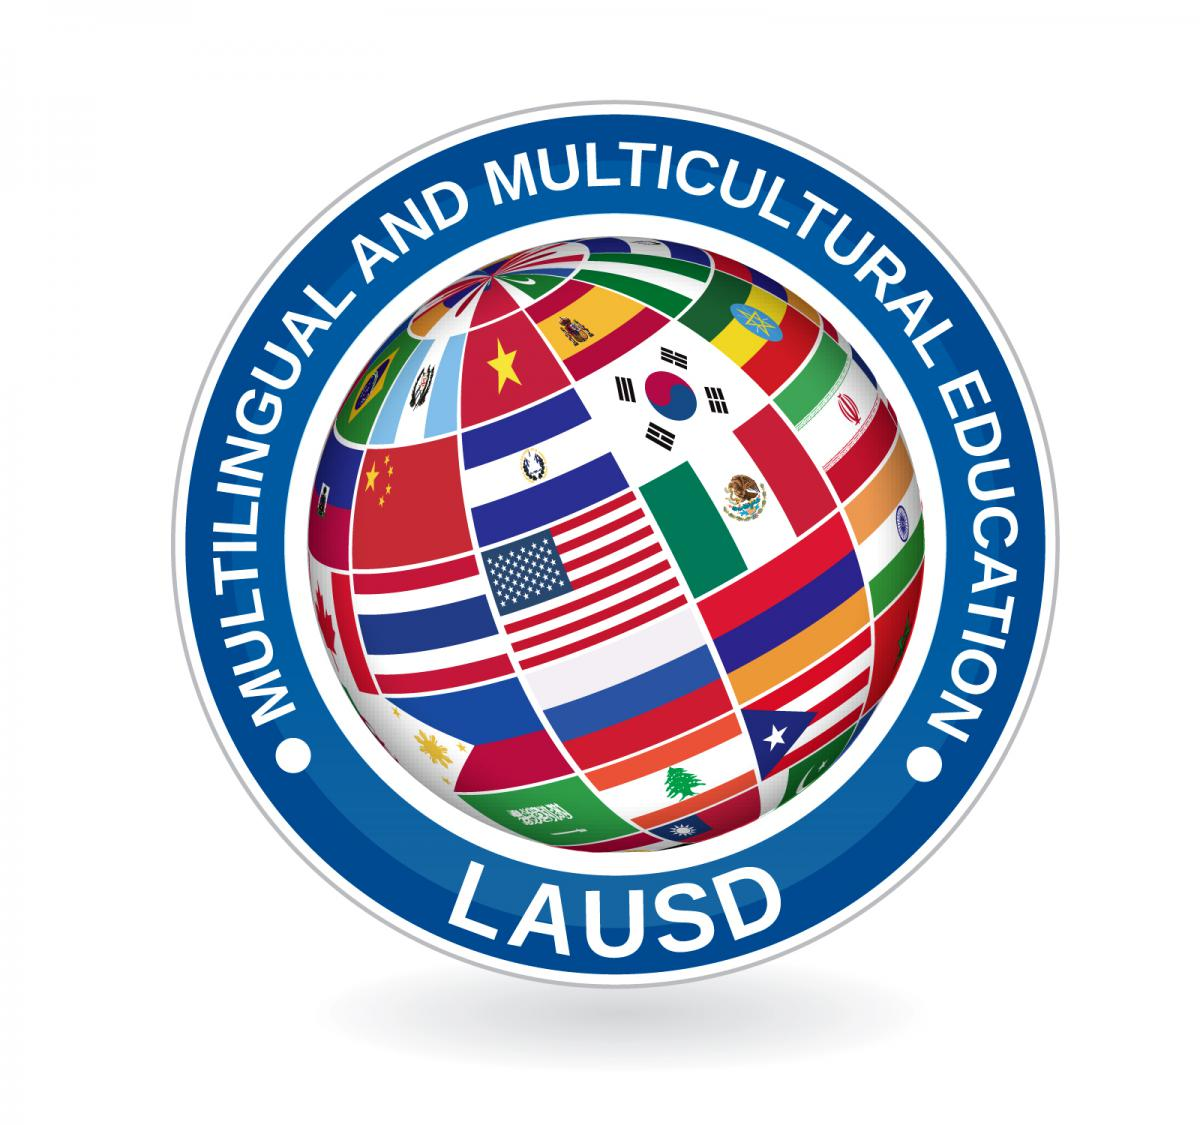 Multilingual and Multicultural Education Department